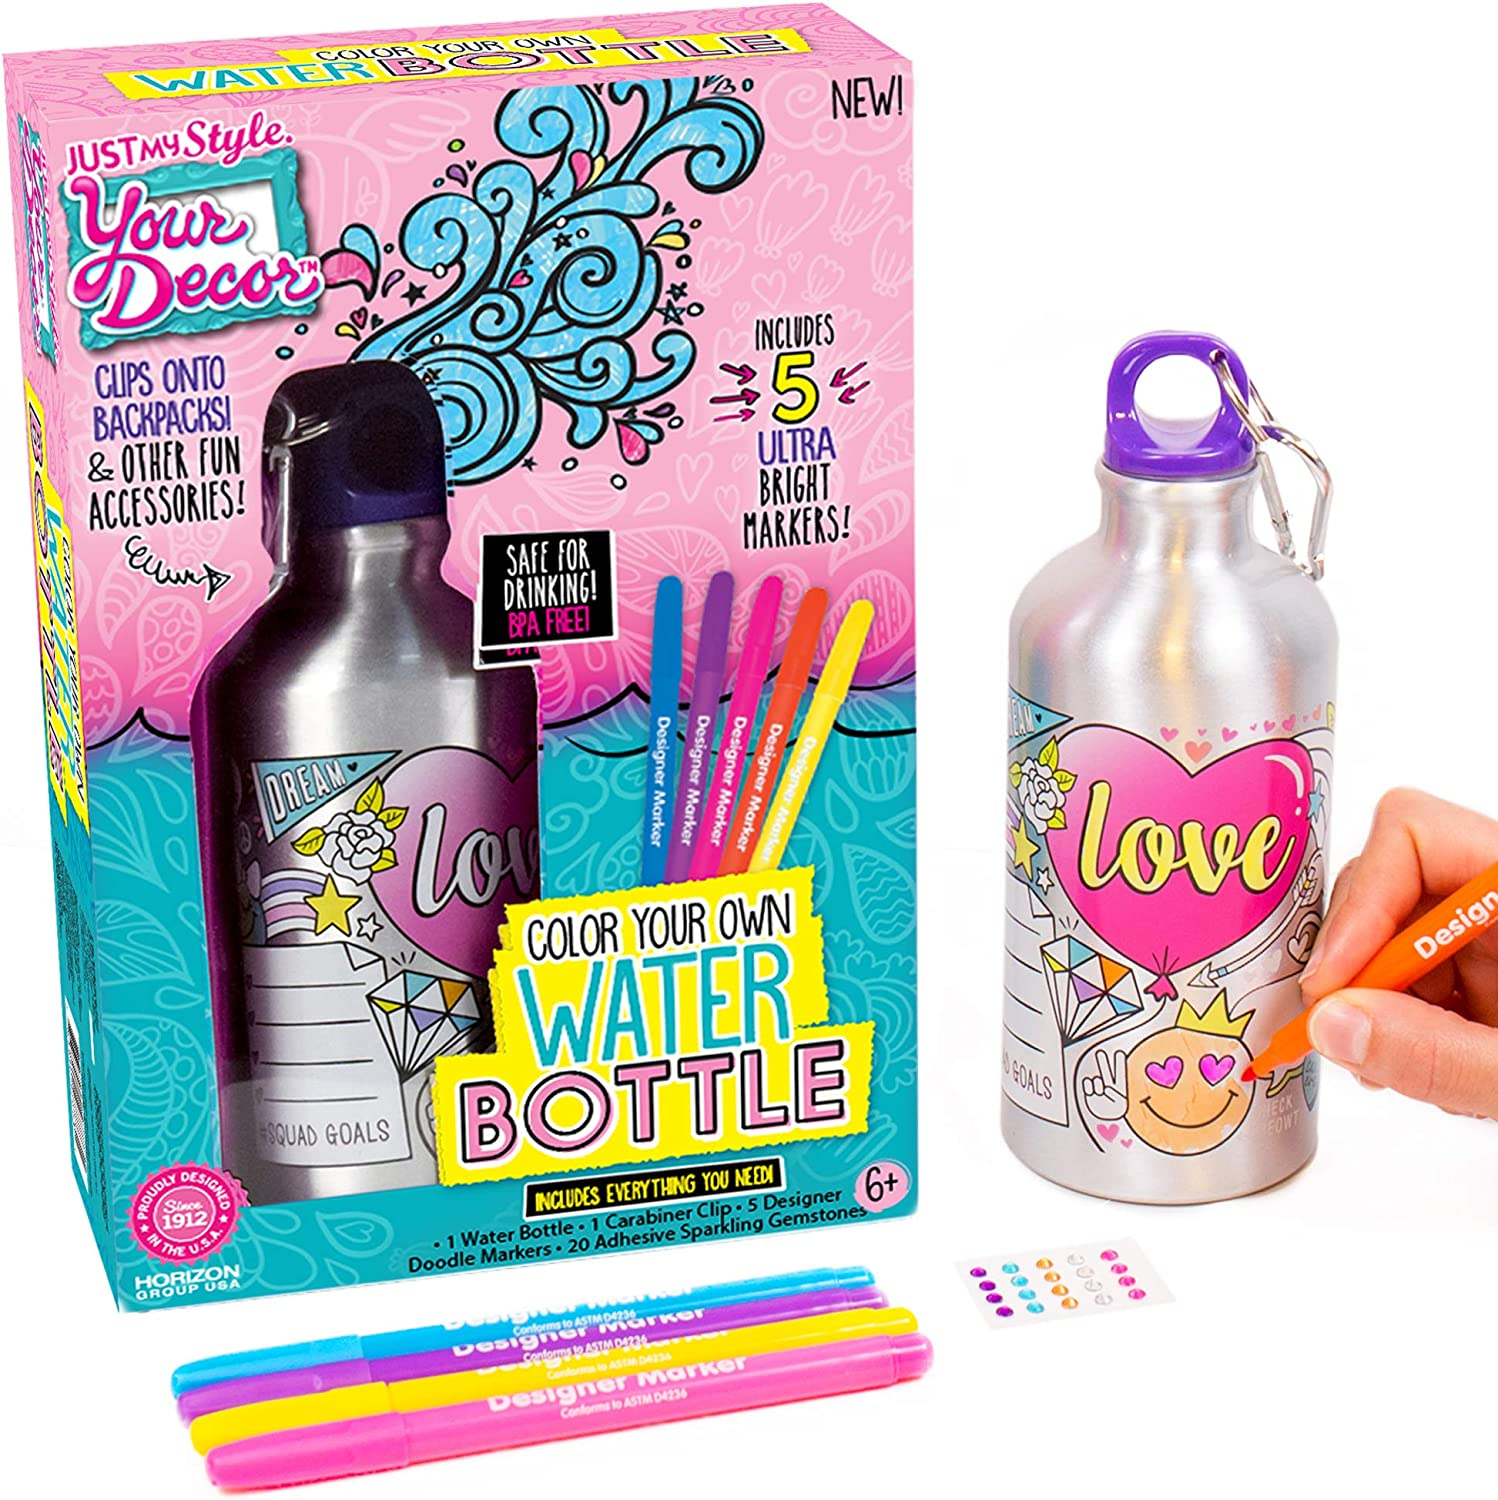 Just My Style Your Decor Color Your Own Water Bottle By Horizon Group Usa Diy Bottle Coloring Craft Kit Bpa Free Aluminum 18 9fl Oz Drinking Water Bottle Decorate Using Colorful Markers